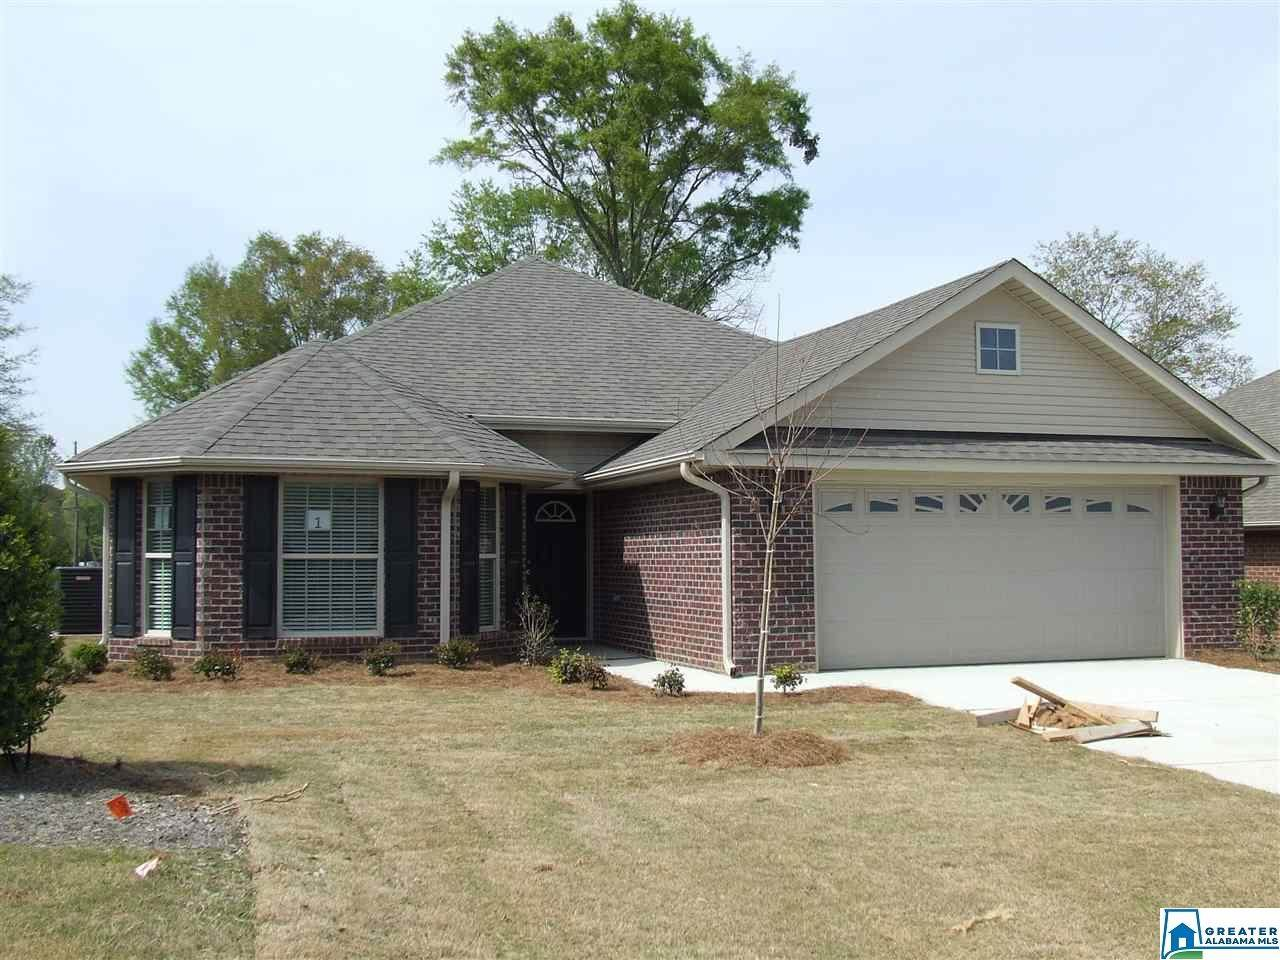 432 Union Loop - Photo 1